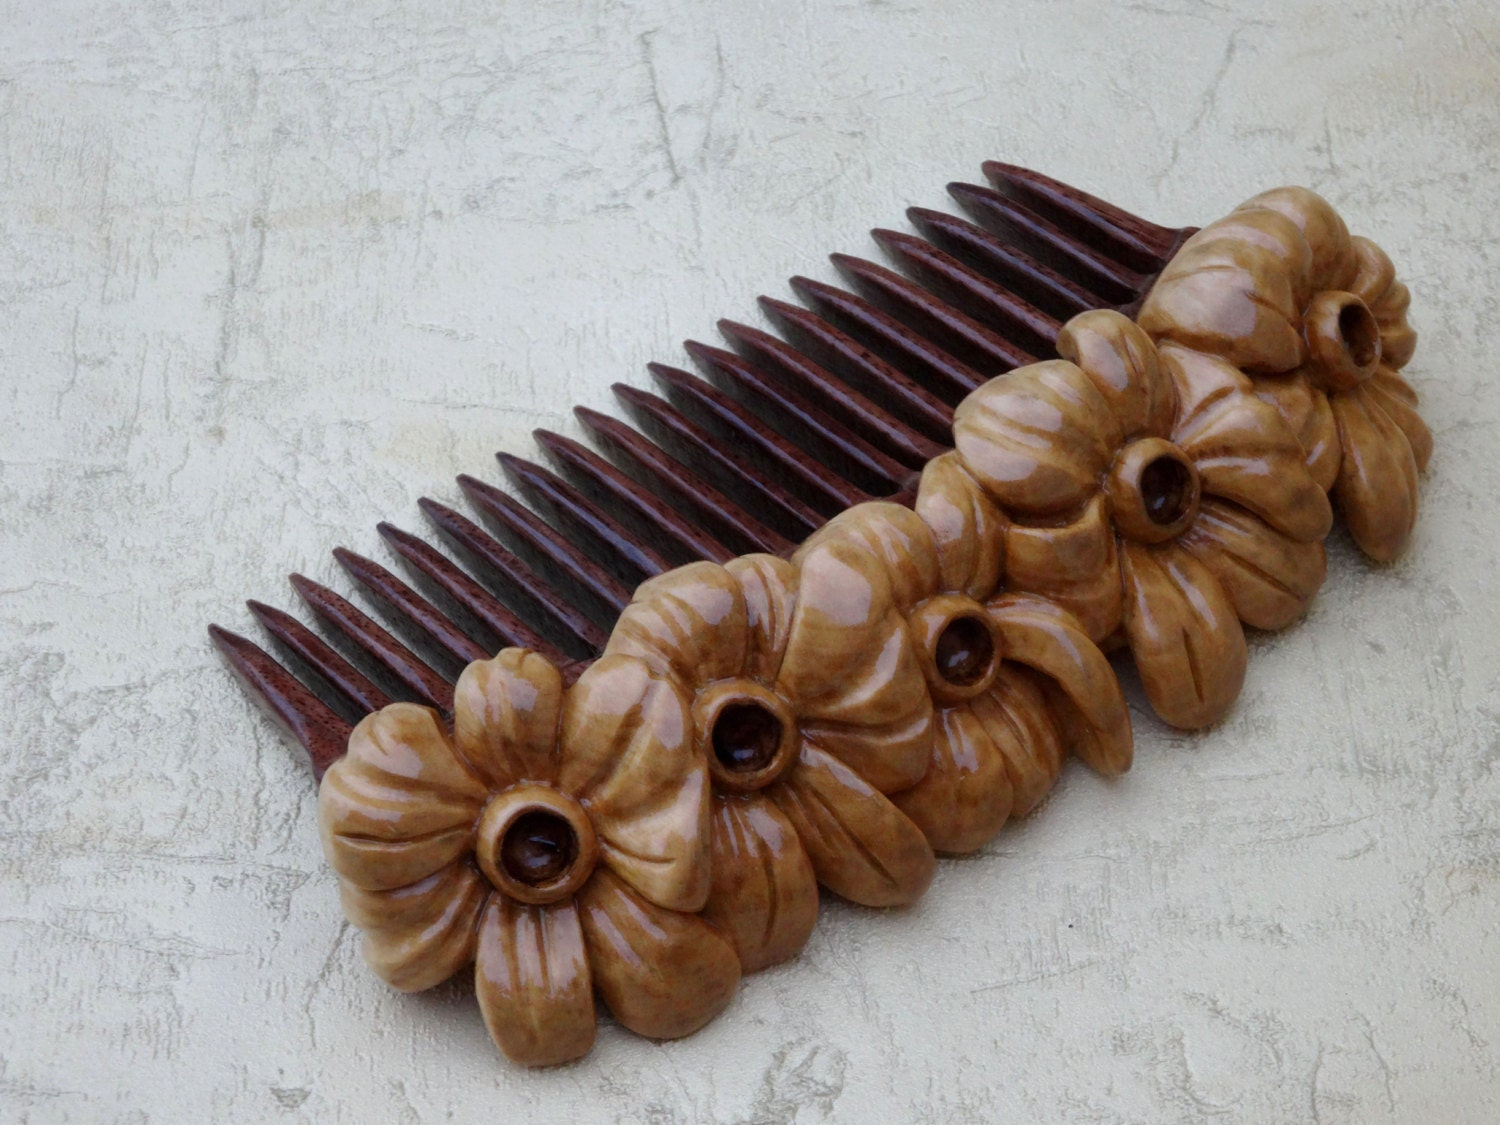 Wooden comb hair accessories of wood carving